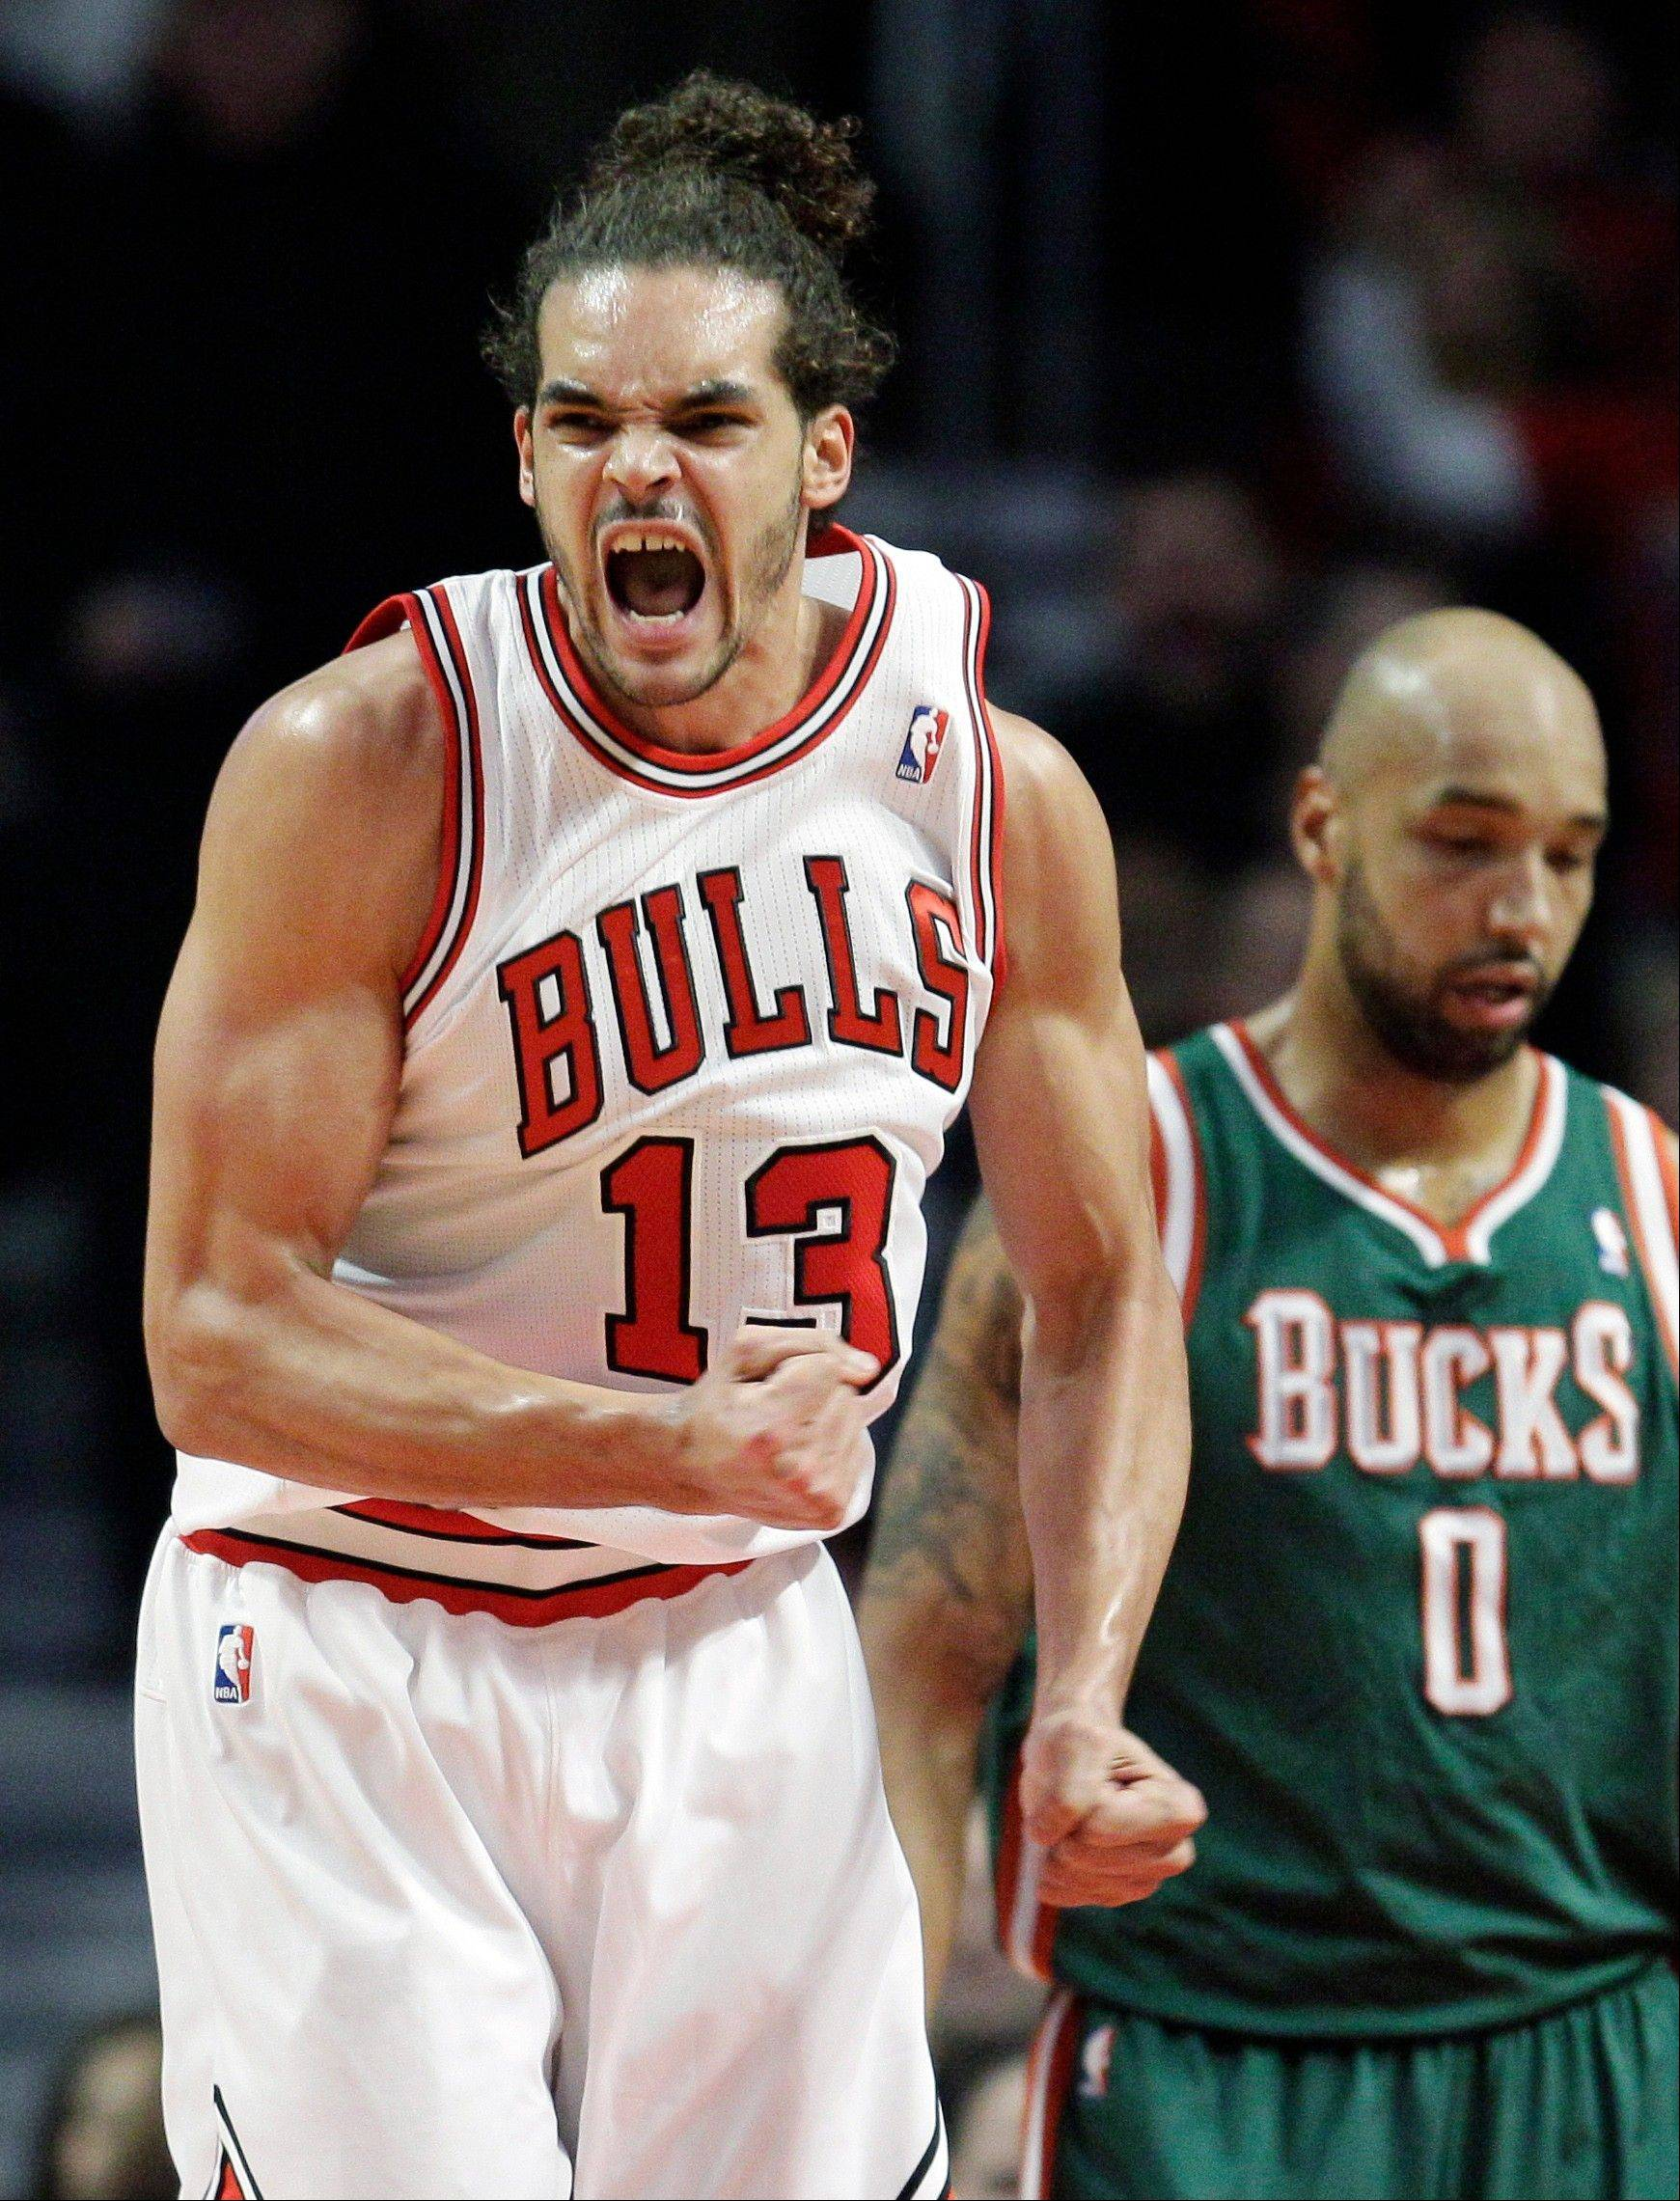 Bulls center Joakim Noah (13) reacts after scoring as Milwaukee Bucks forward Drew Gooden (0) looks away during the first quarter of an NBA basketball game in Chicago on Friday, Jan. 27, 2012.